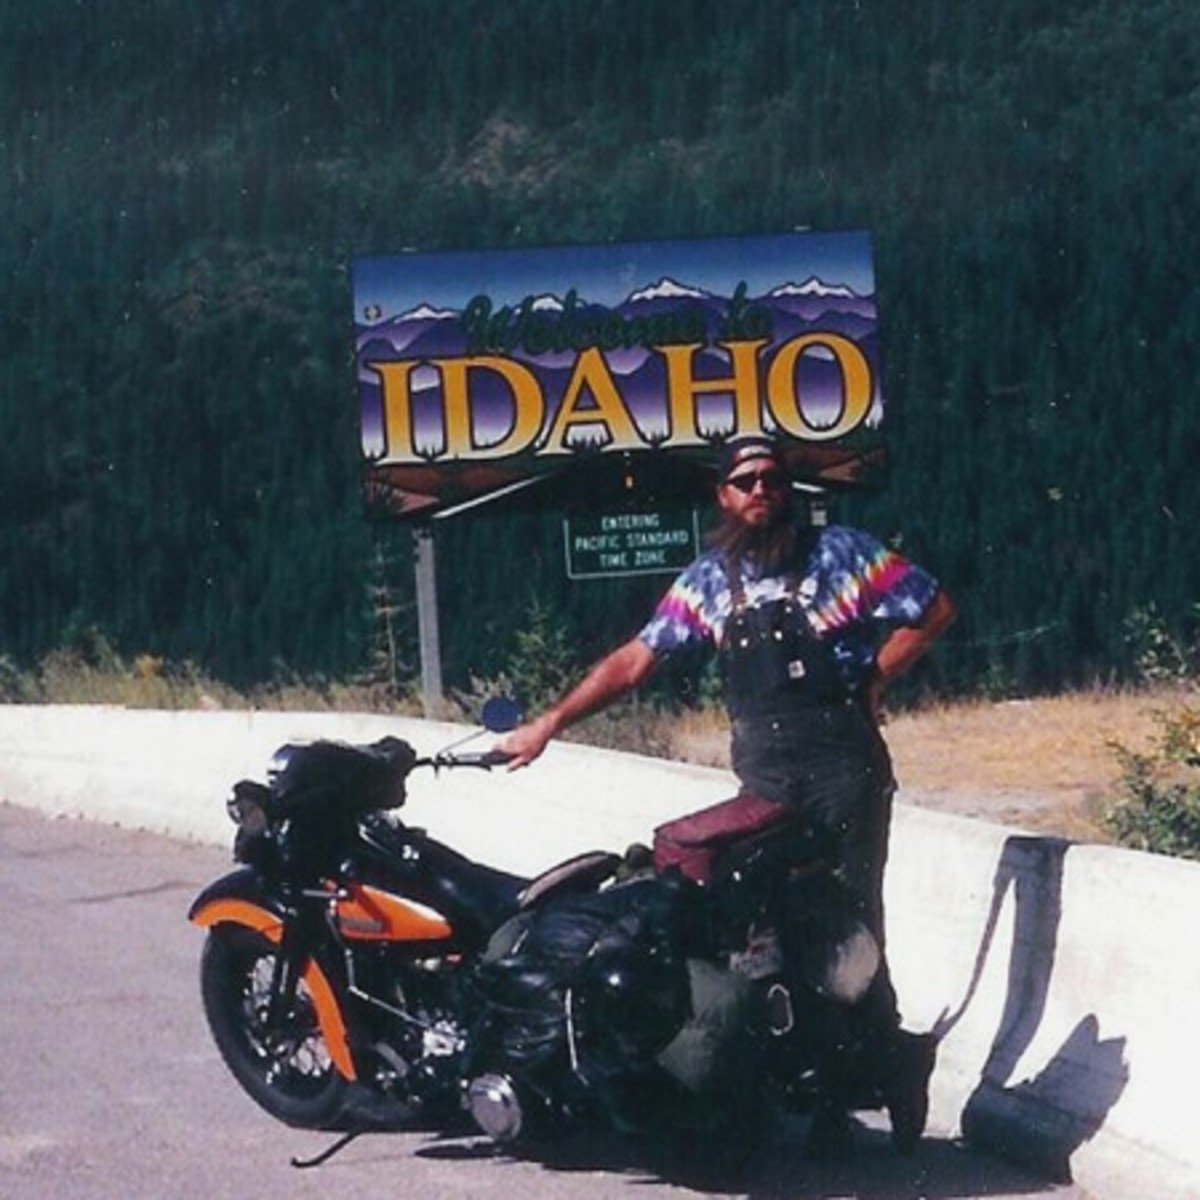 The old man at the Idaho border